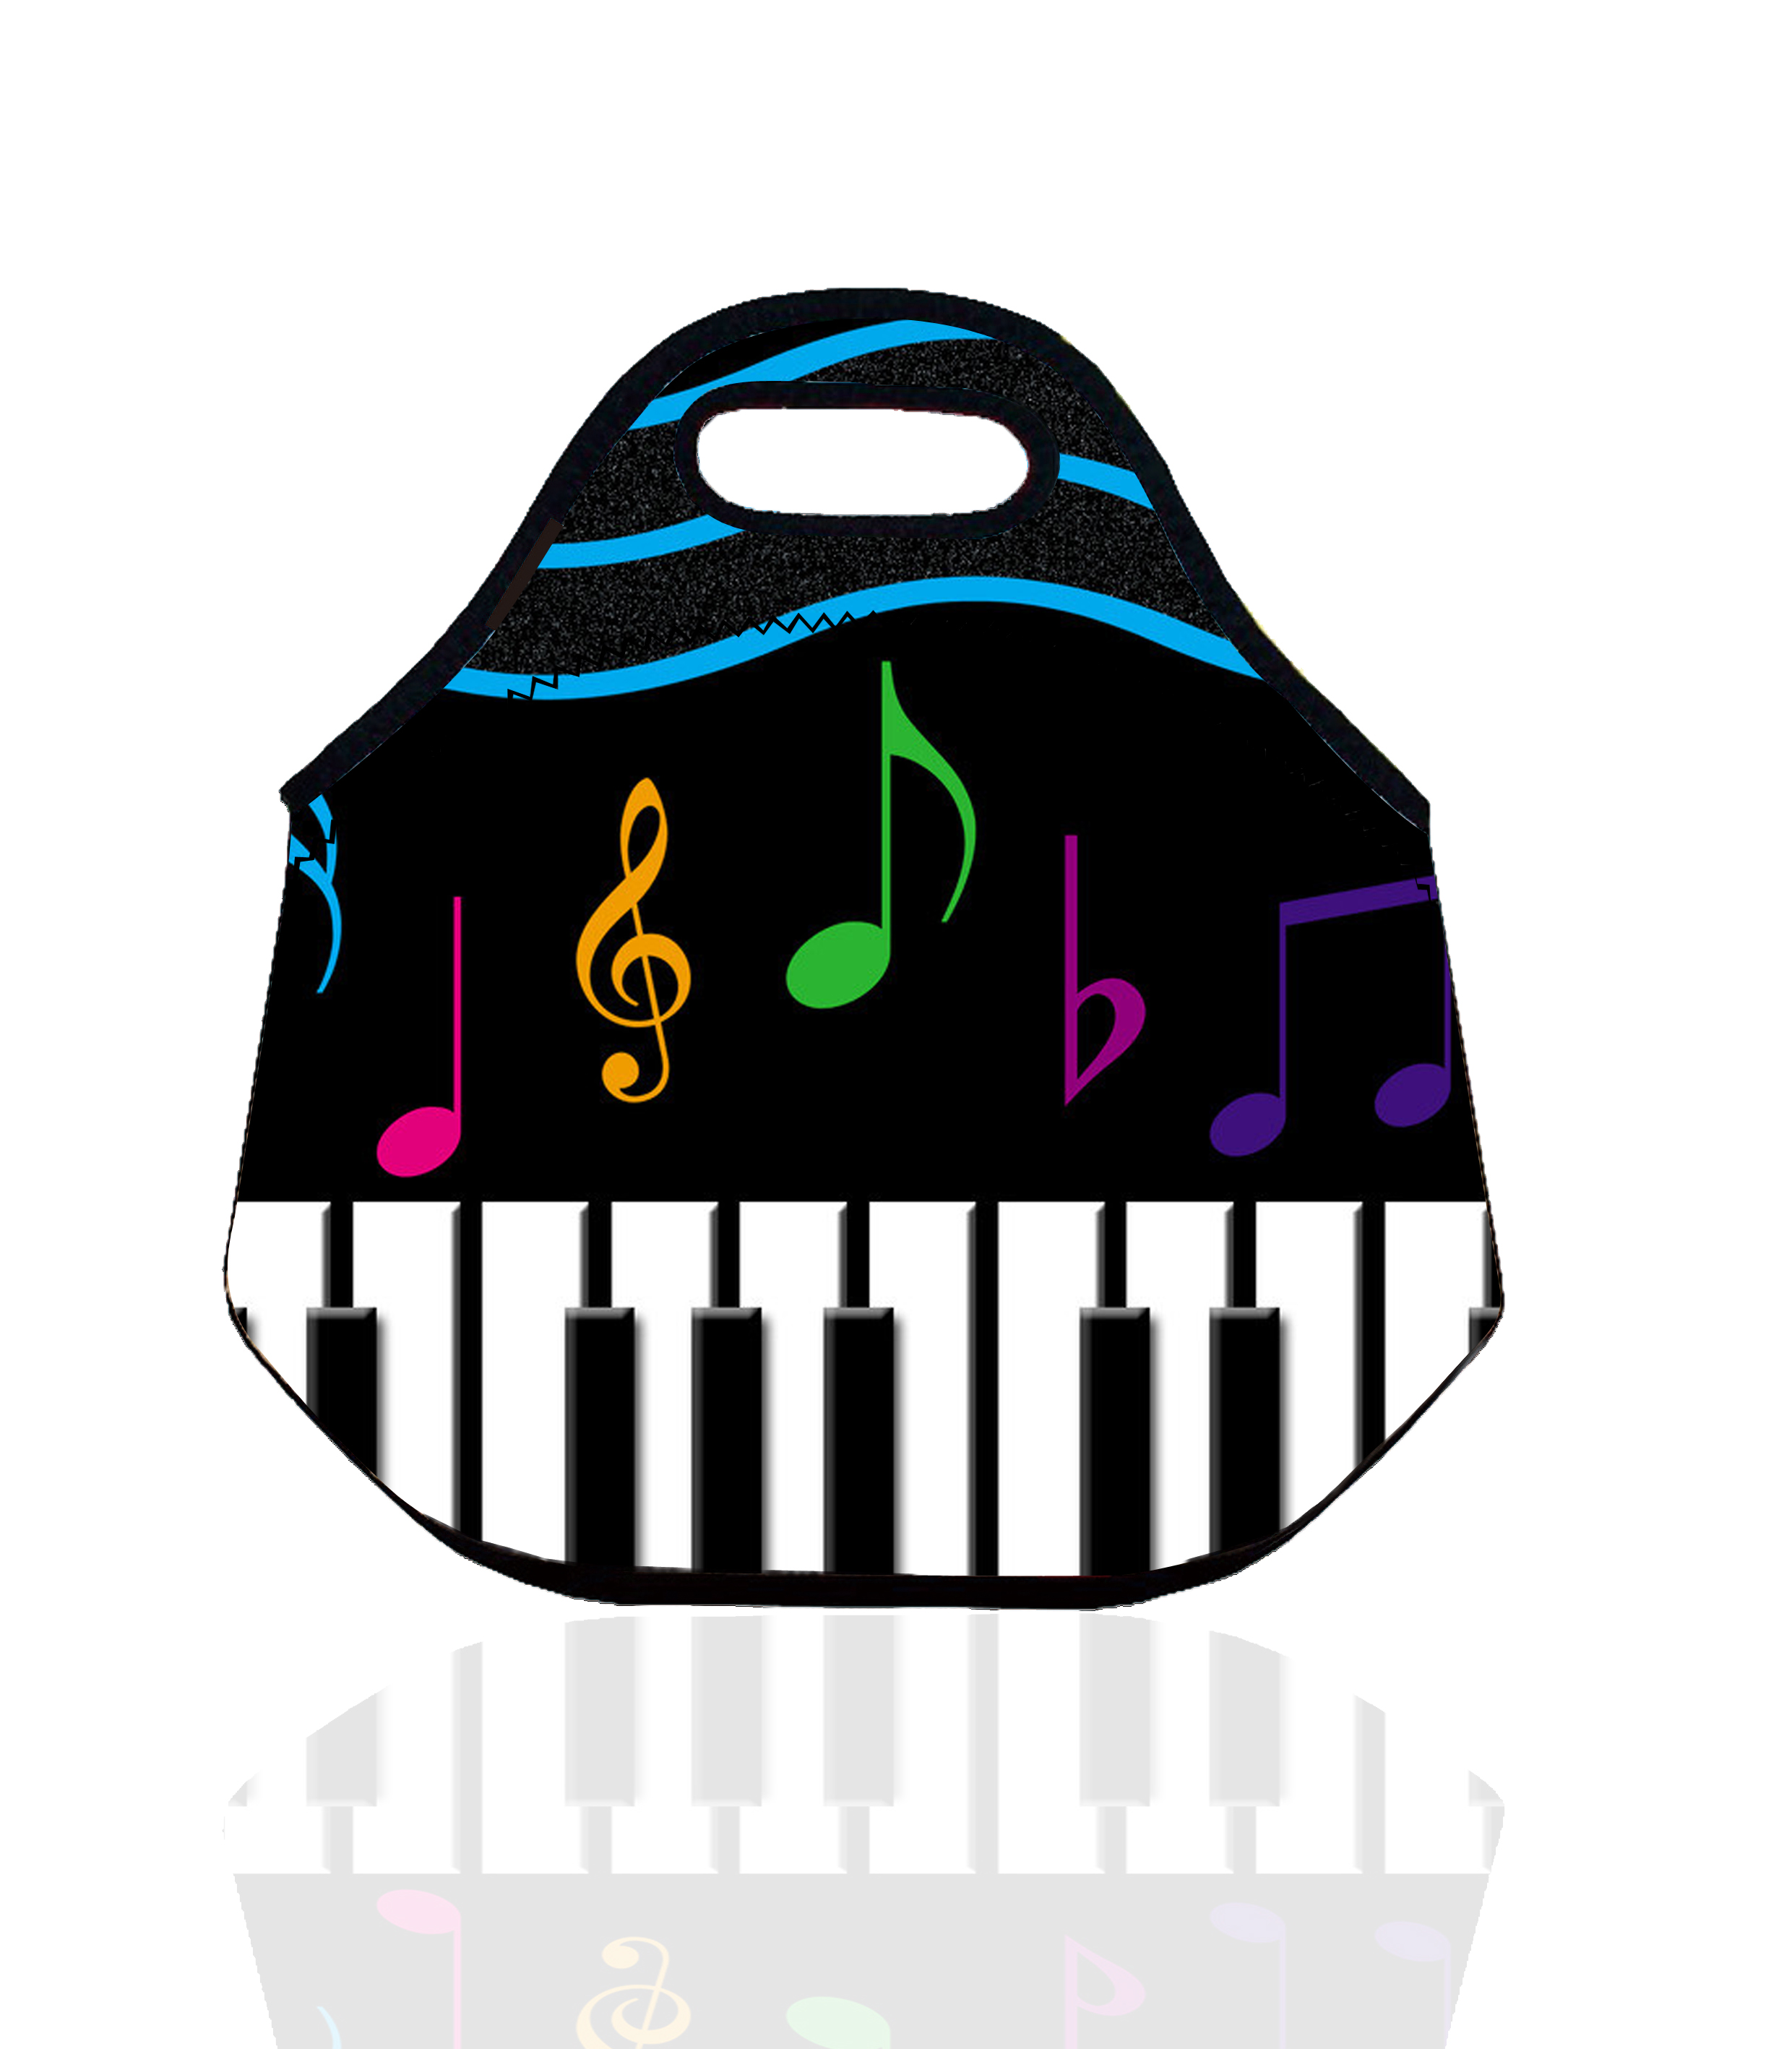 Piano Style Insulated Lunch Bag for Women and Kids,Neoprene Thermal Picnic Lunch Box Bag Container For Students Back To School